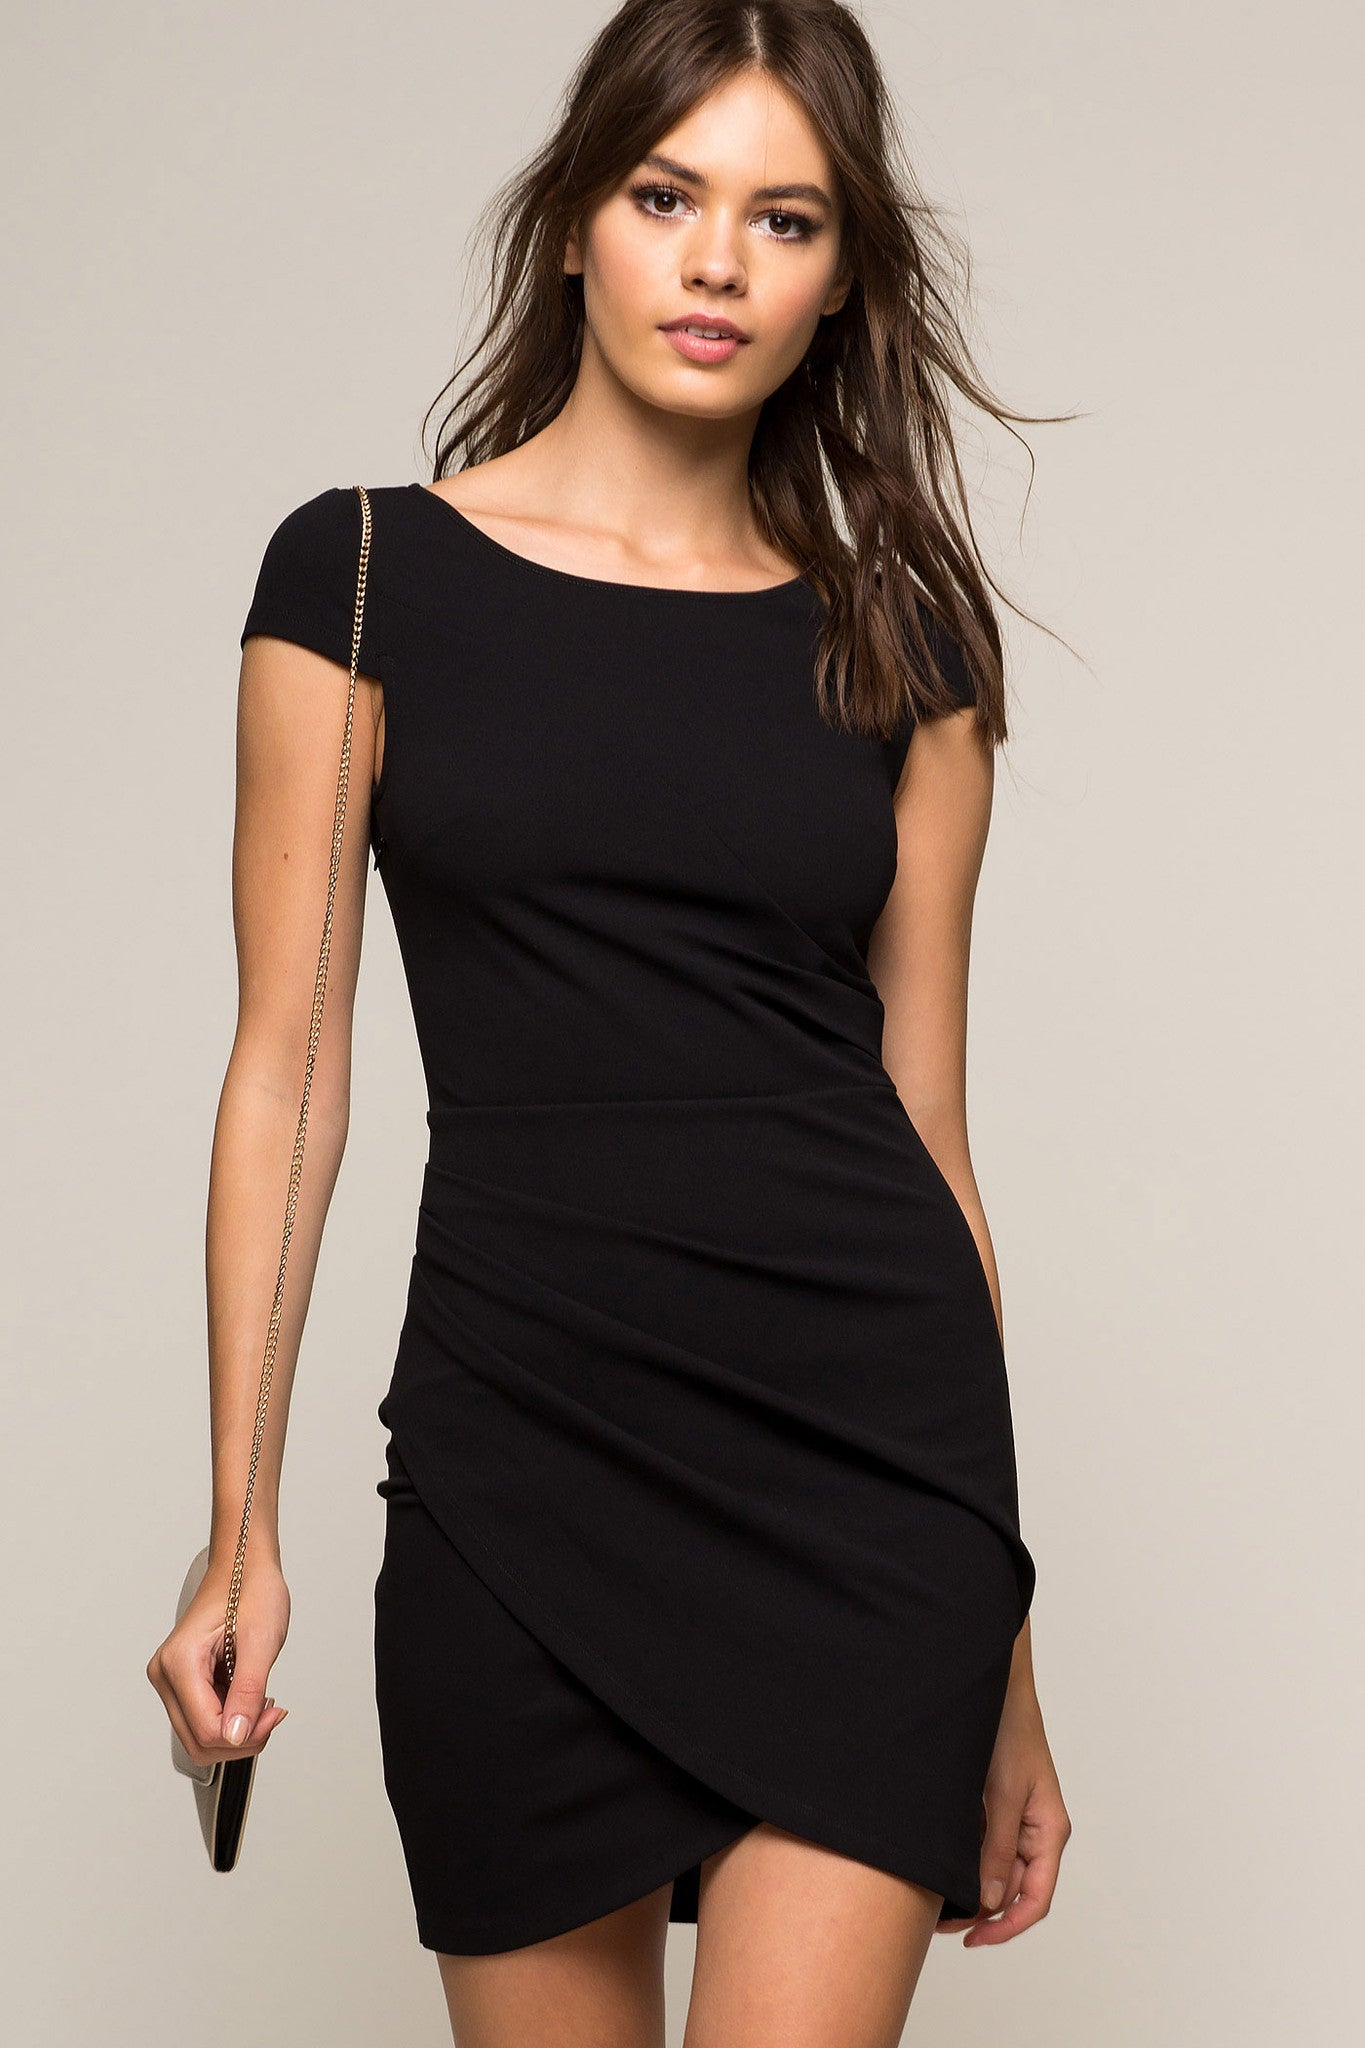 Short little black party dress with back cut outs - Women S Black Bodycon Mini Dress With Cap Sleeves Front View